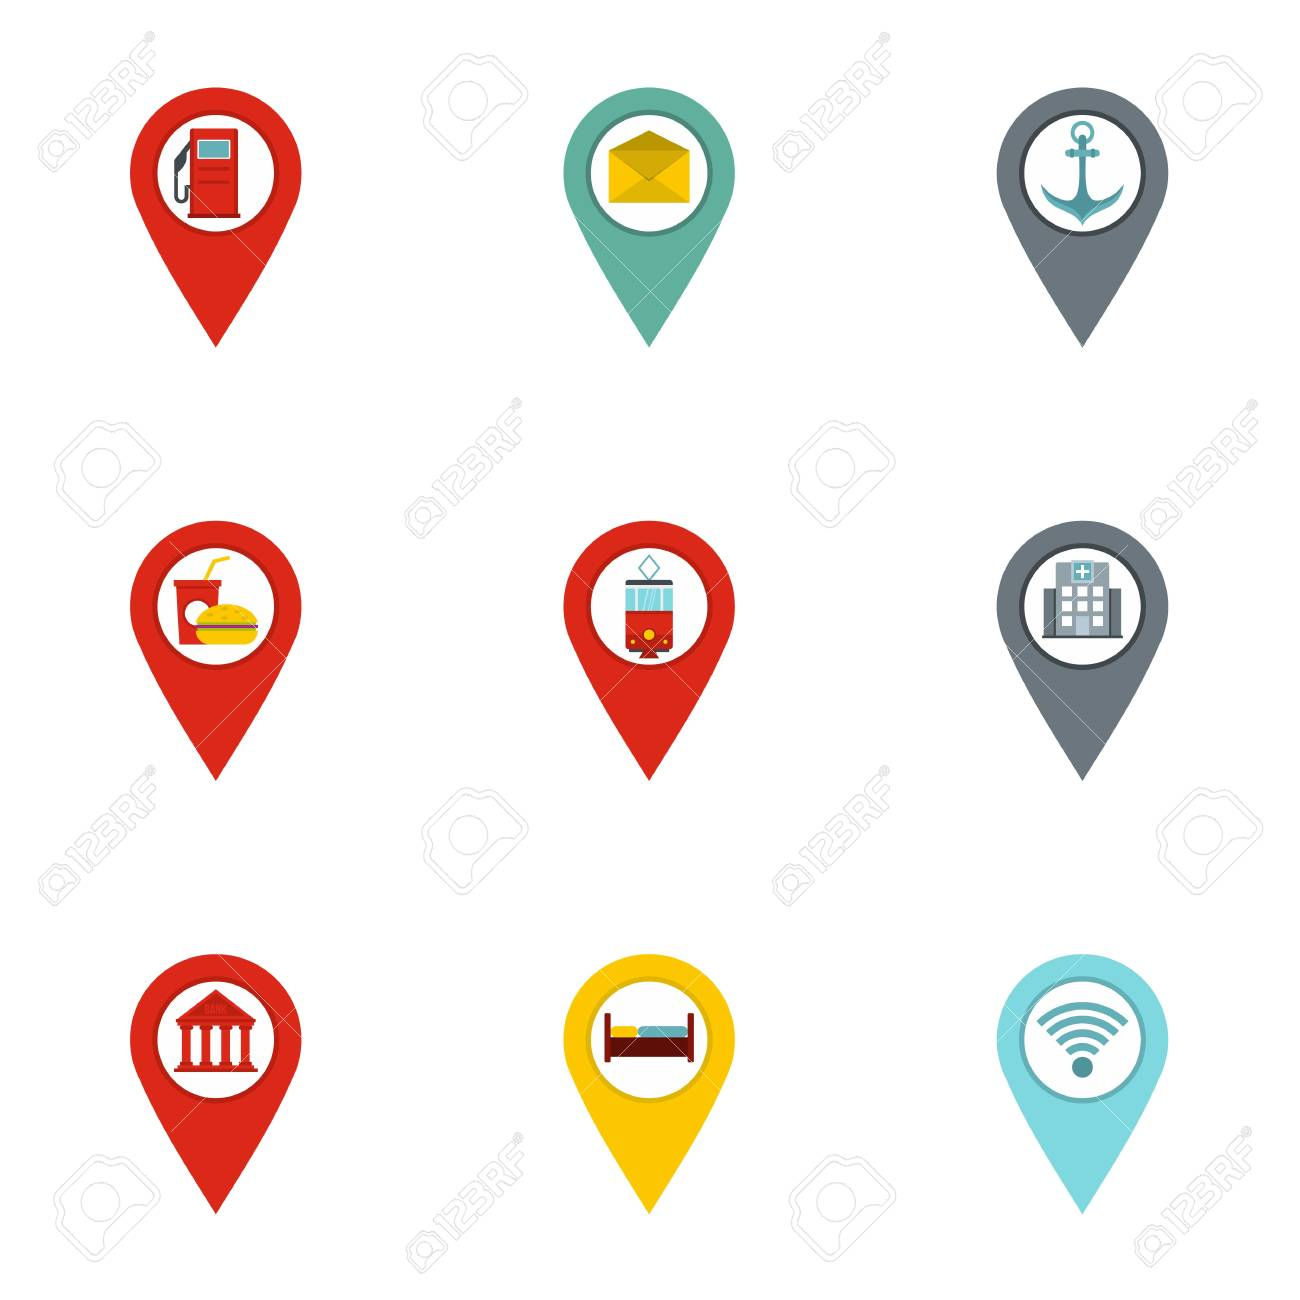 map pins icon set flat set of 9 map pins vector icons for web